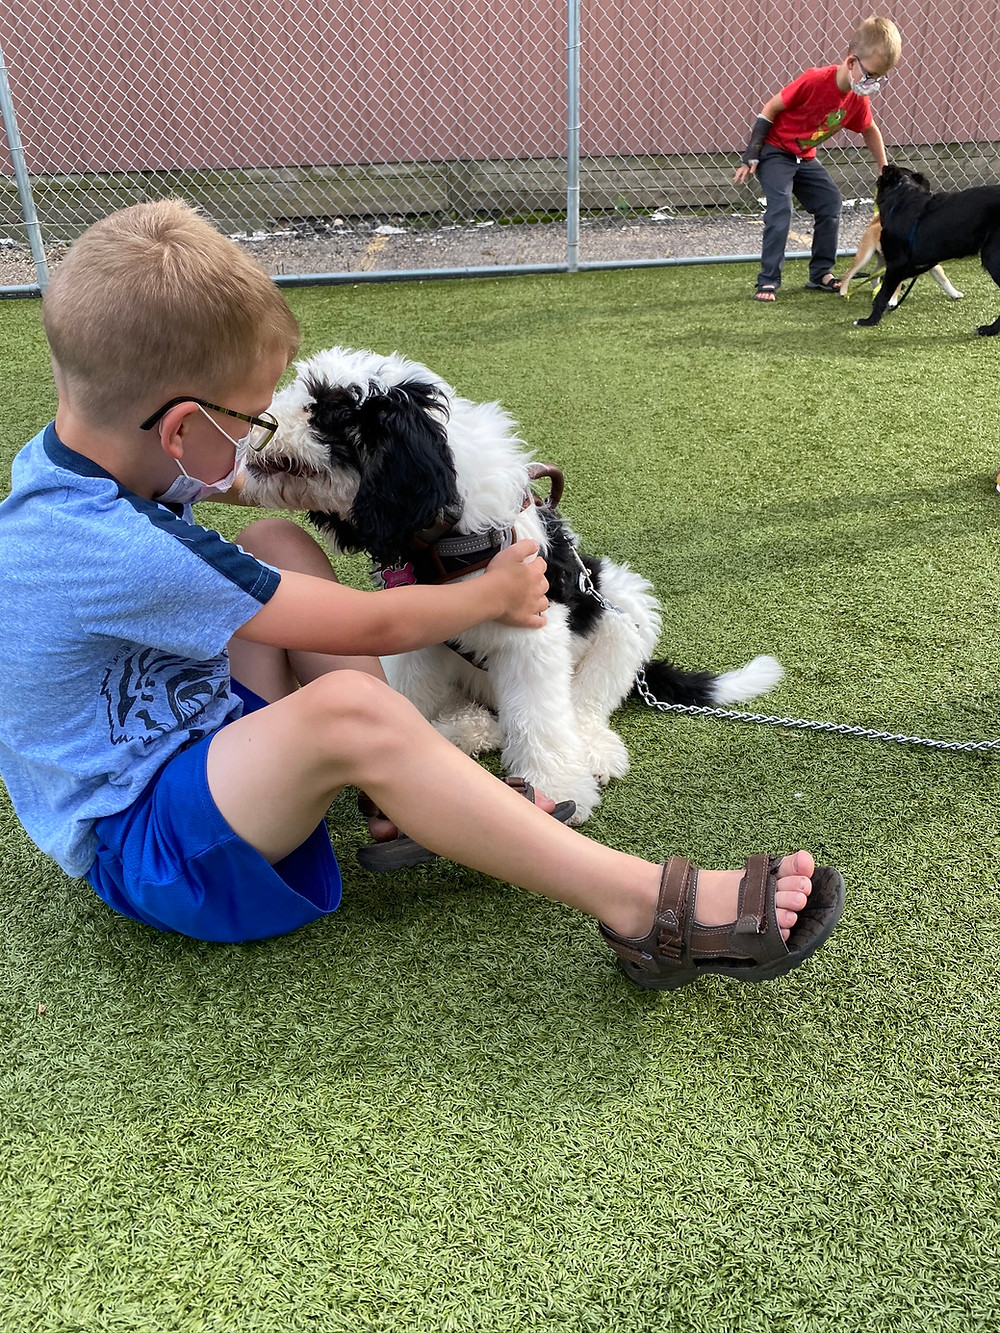 A child in a blue shirt pets a shepadoodle pup. Another child plays with dogs in the background